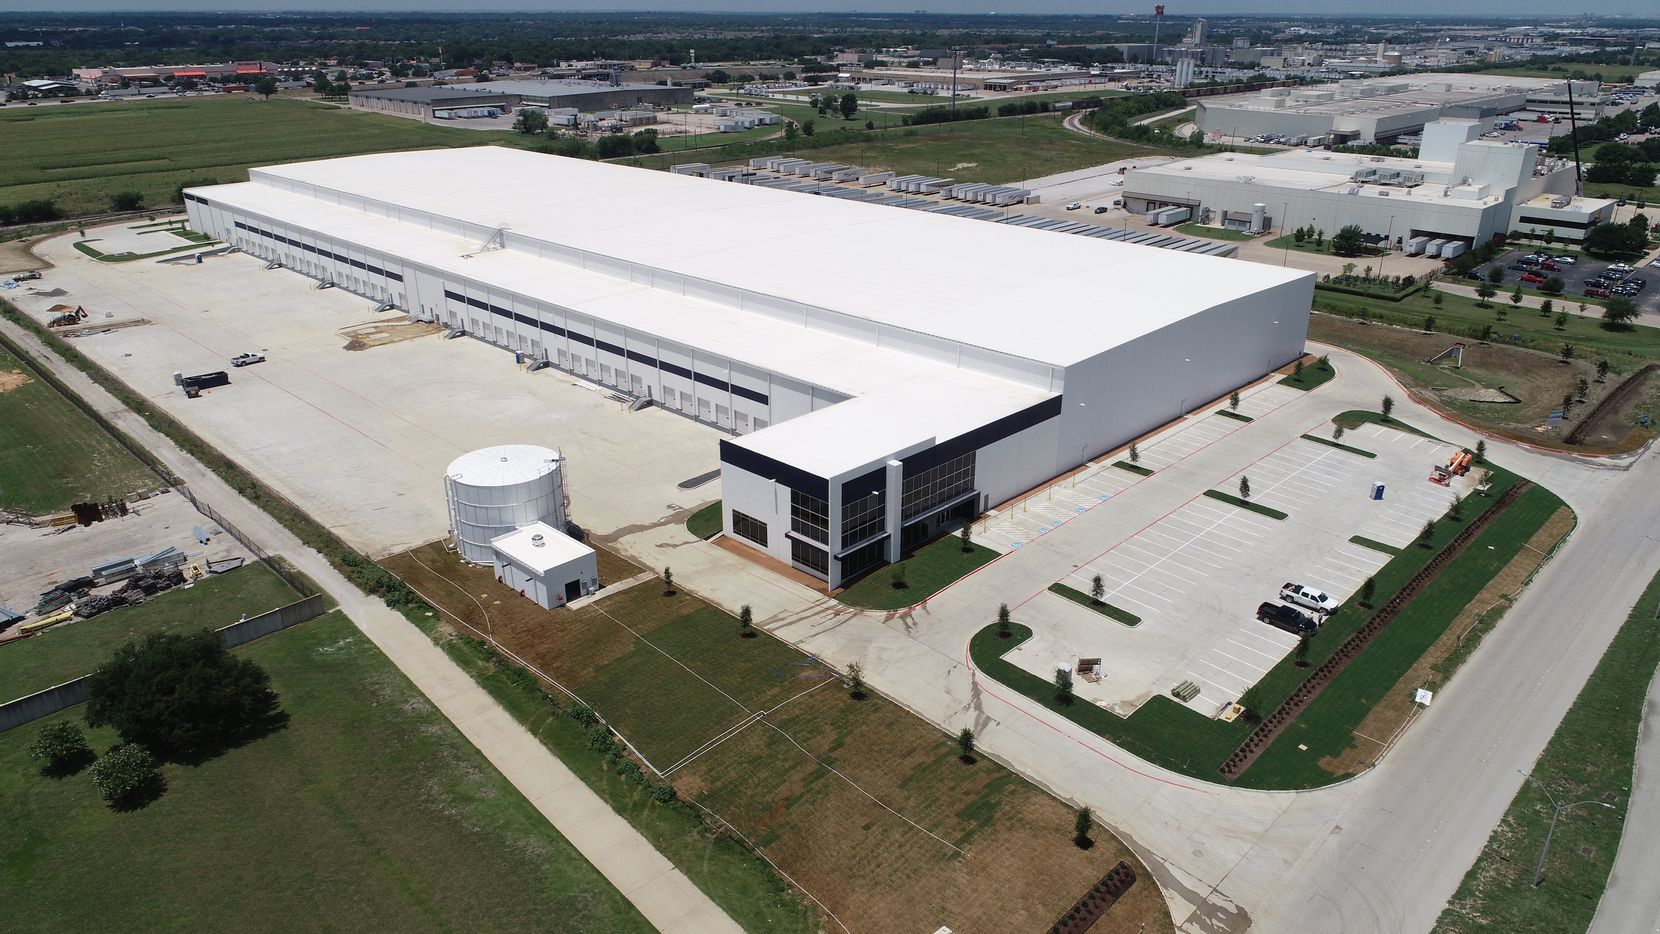 Emergent Cold has leased the DFW ColdSpot warehouse in south Fort Worth.